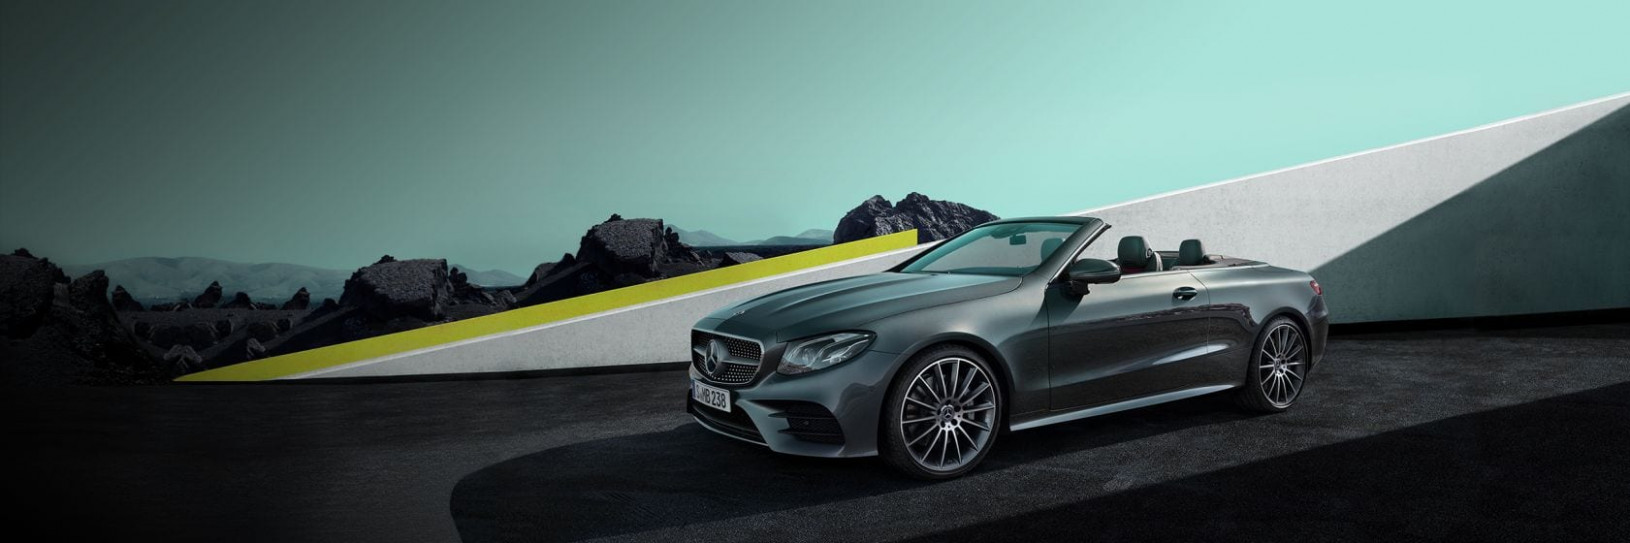 Brochure - mercedes thailand price list 2020